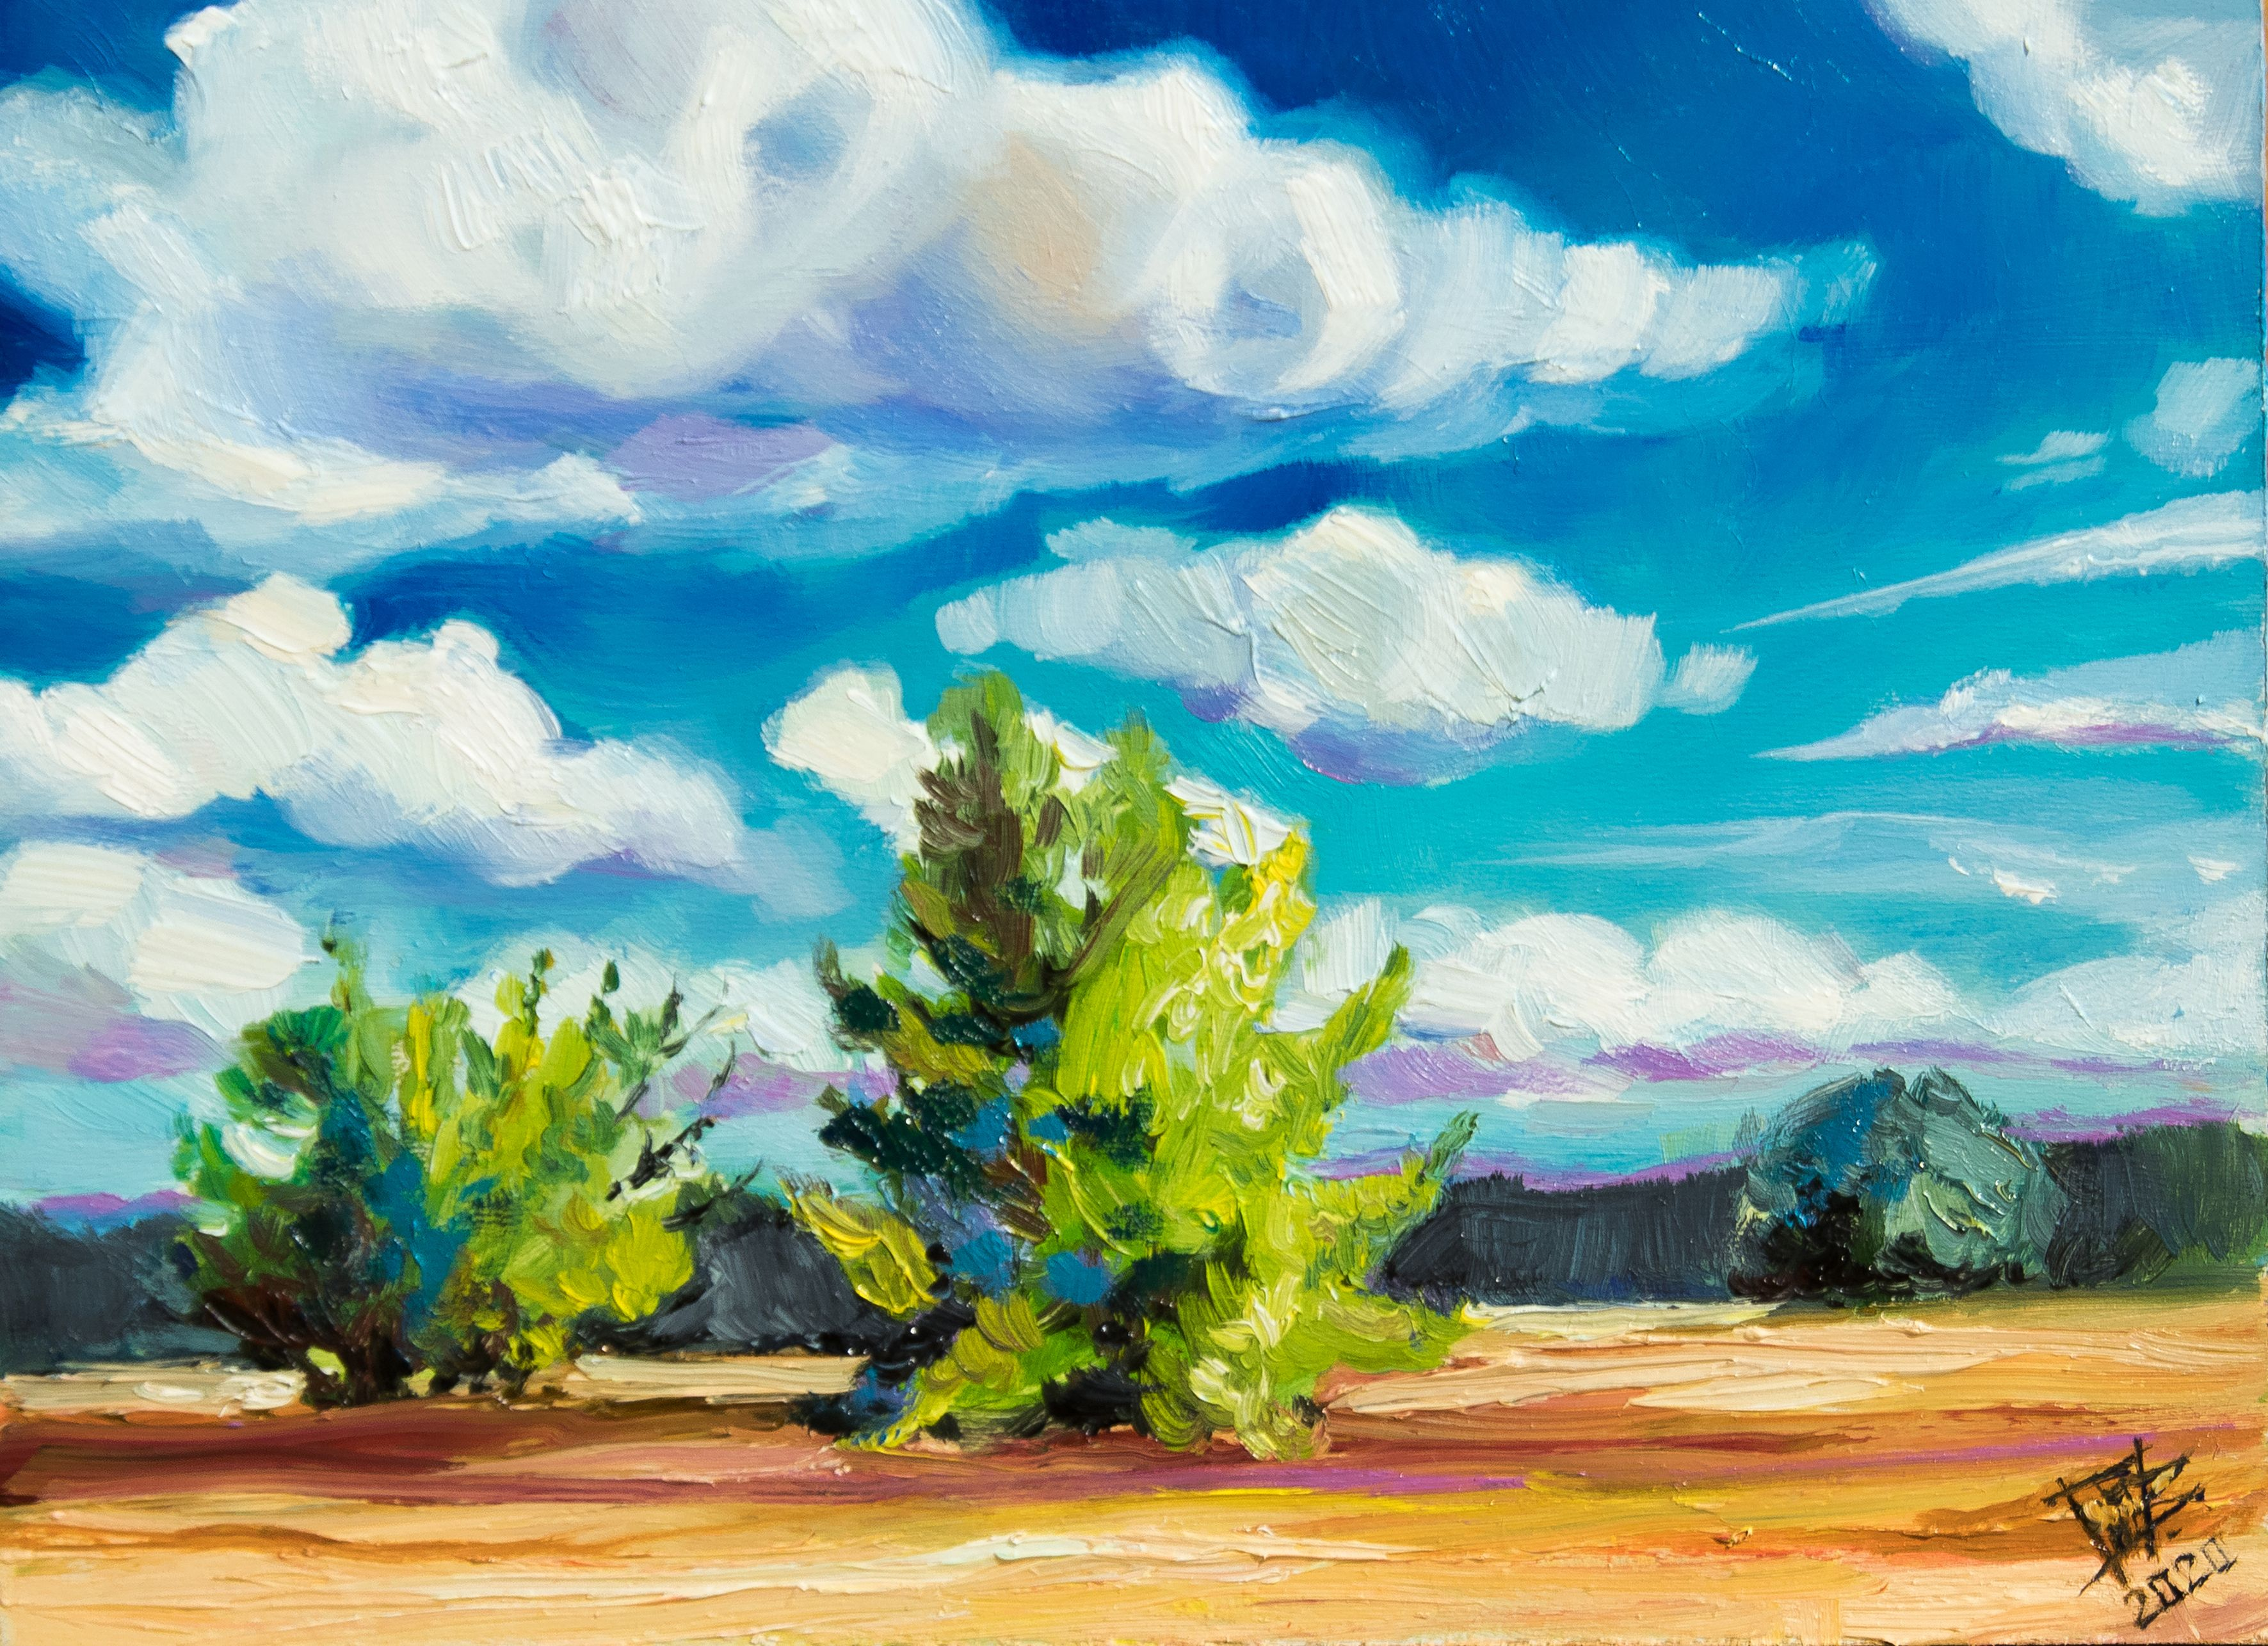 Bright Field Landscape Dramatic Clouds Painting Original Oil Painting Oil On Hardboard Forest And Field Landscape Oil Study In 2020 Cloud Painting Spanish Decor Original Oil Painting